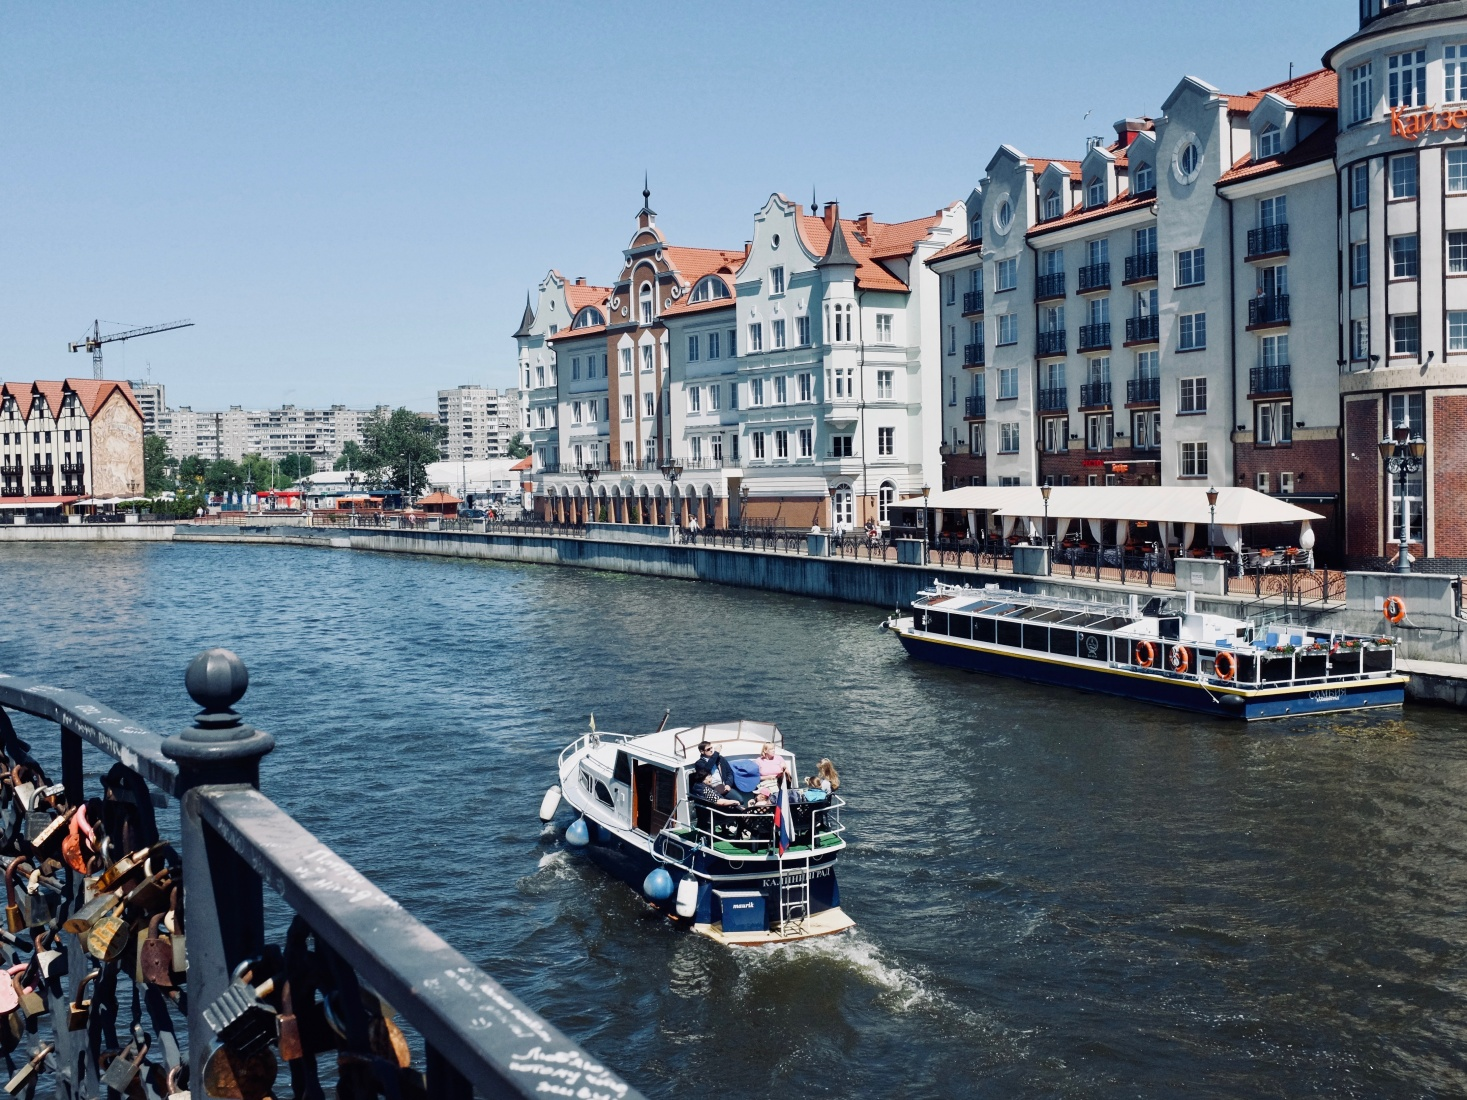 The Pregolya River in Kaliningrad, Russia, that connects to the Baltic Sea, with boat and neoclassical facades.